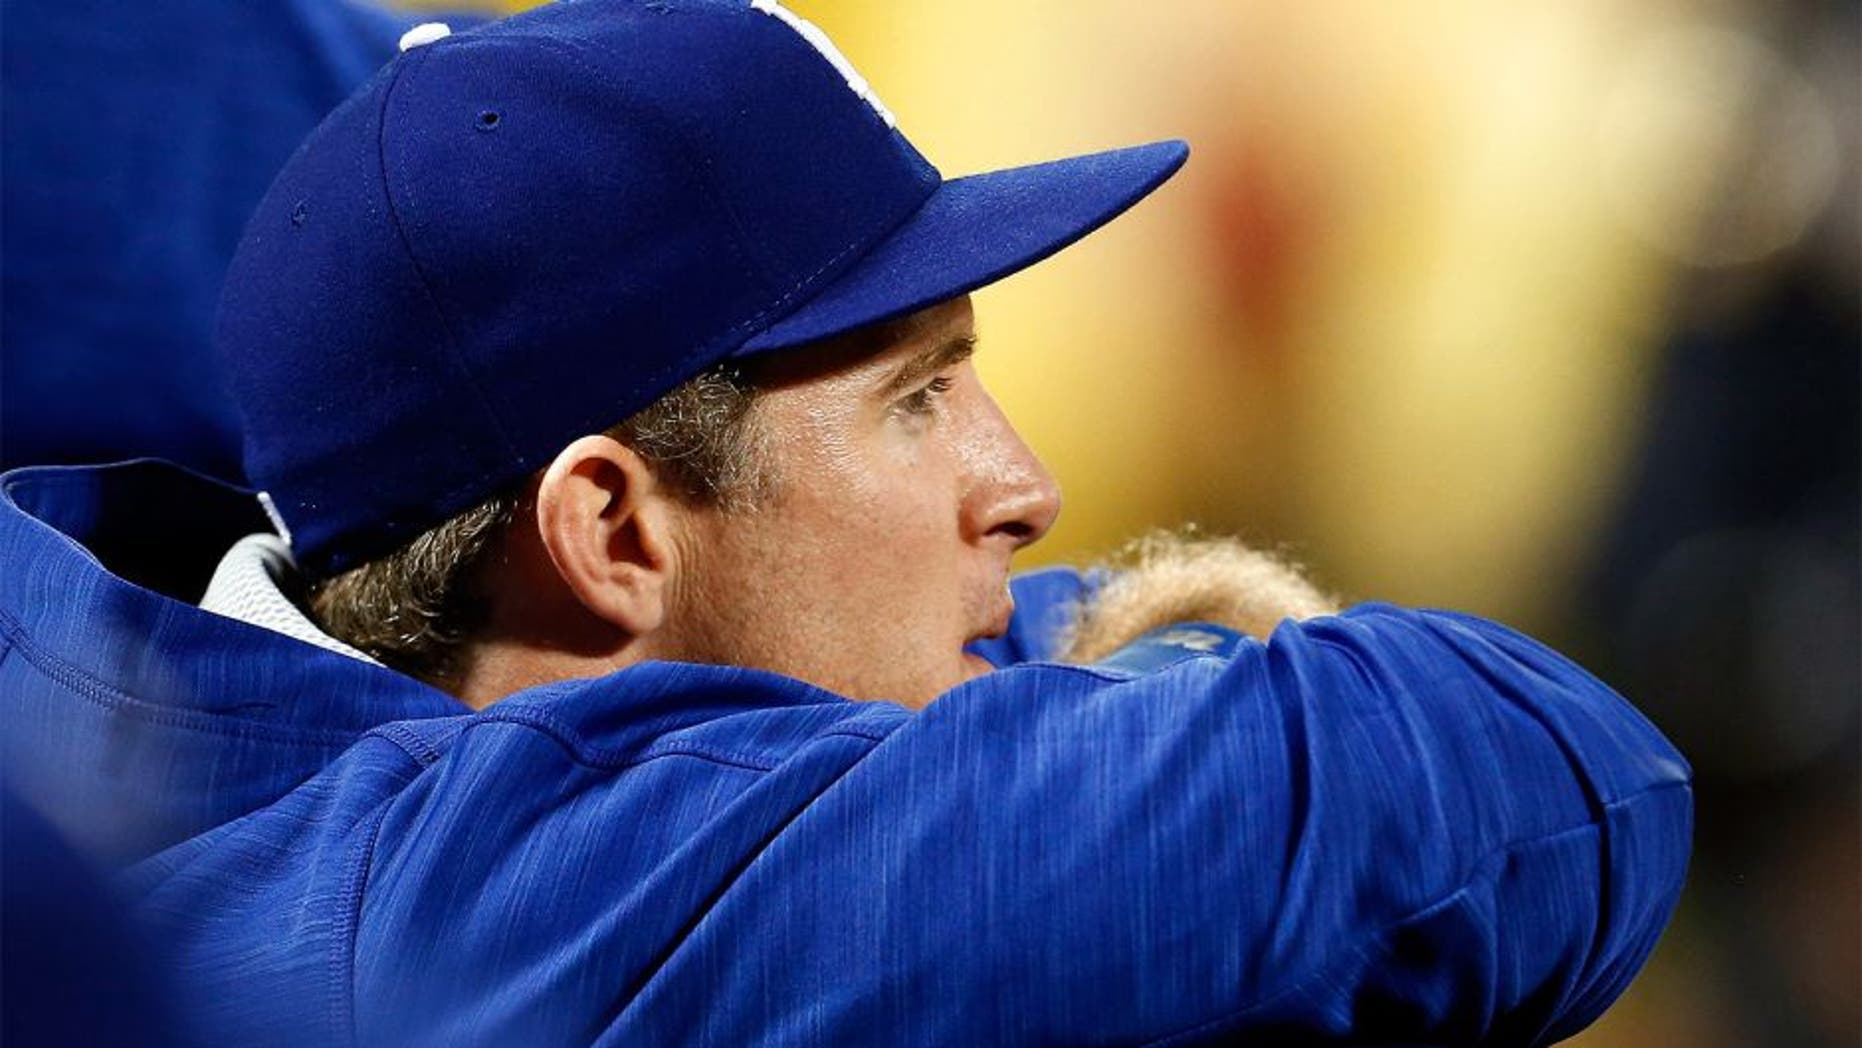 NEW YORK, NY - OCTOBER 12: Chase Utley #26 of the Los Angeles Dodgers looks on from the dugout against the New York Mets during game three of the National League Division Series at Citi Field on October 12, 2015 in New York City. (Photo by Mike Stobe/Getty Images)